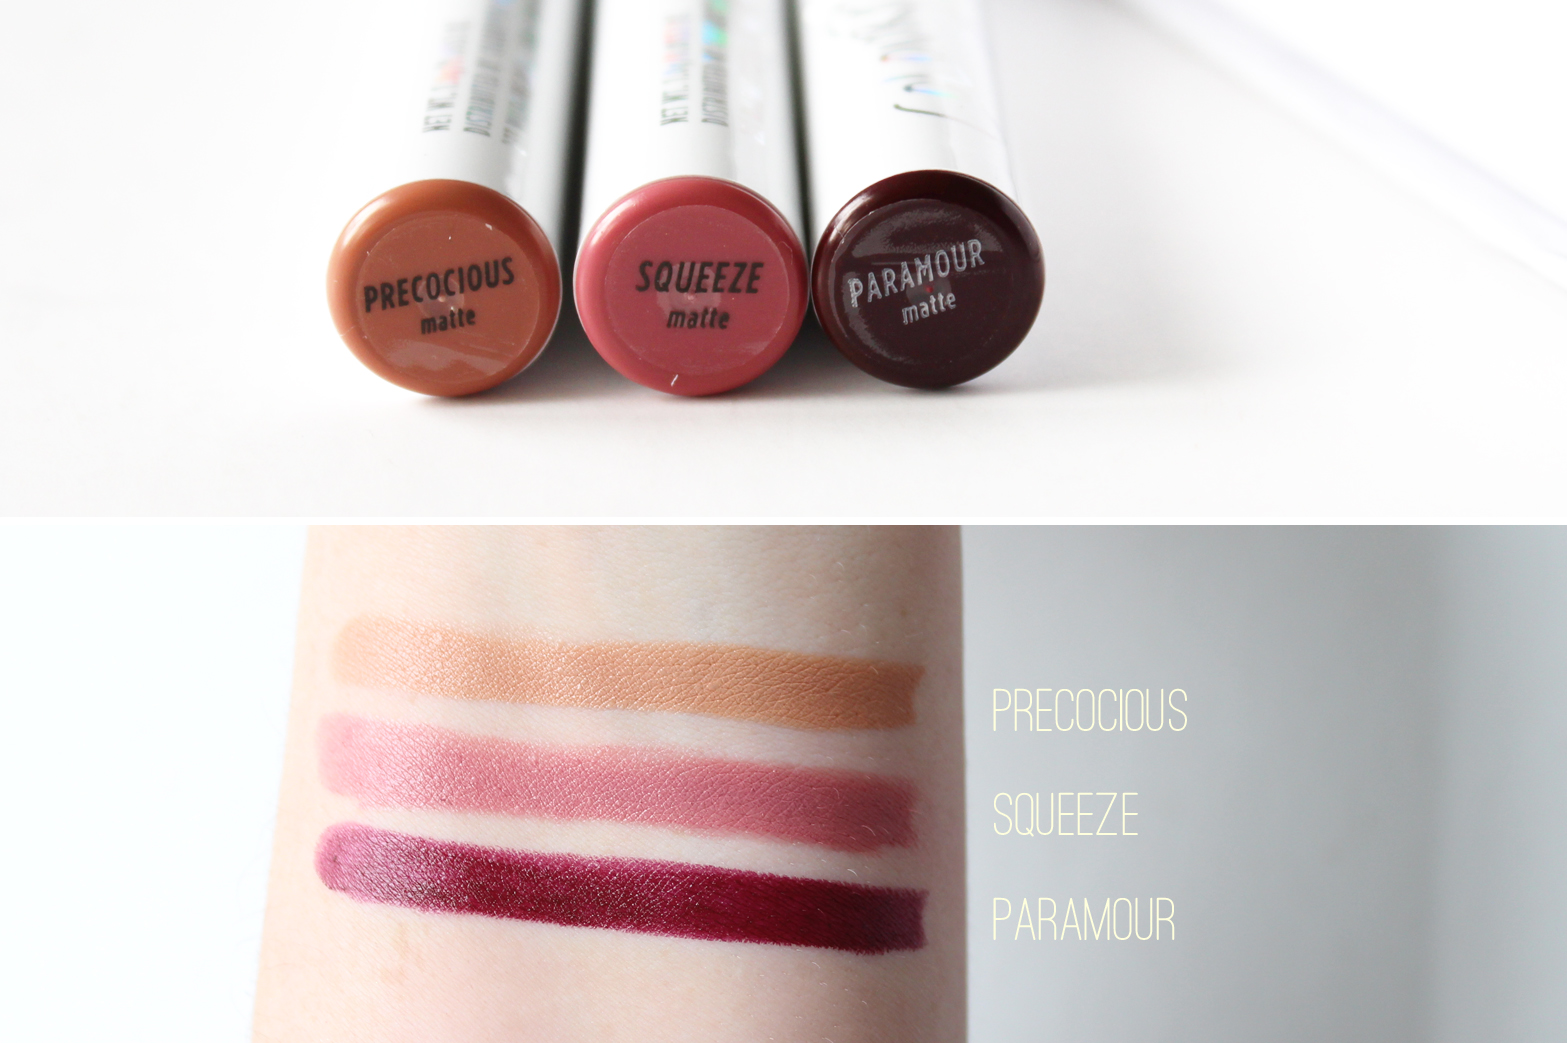 COLOURPOP | Fetch, Please - Isabelle Fuhrman Set - Review + Swatches - CassandraMyee